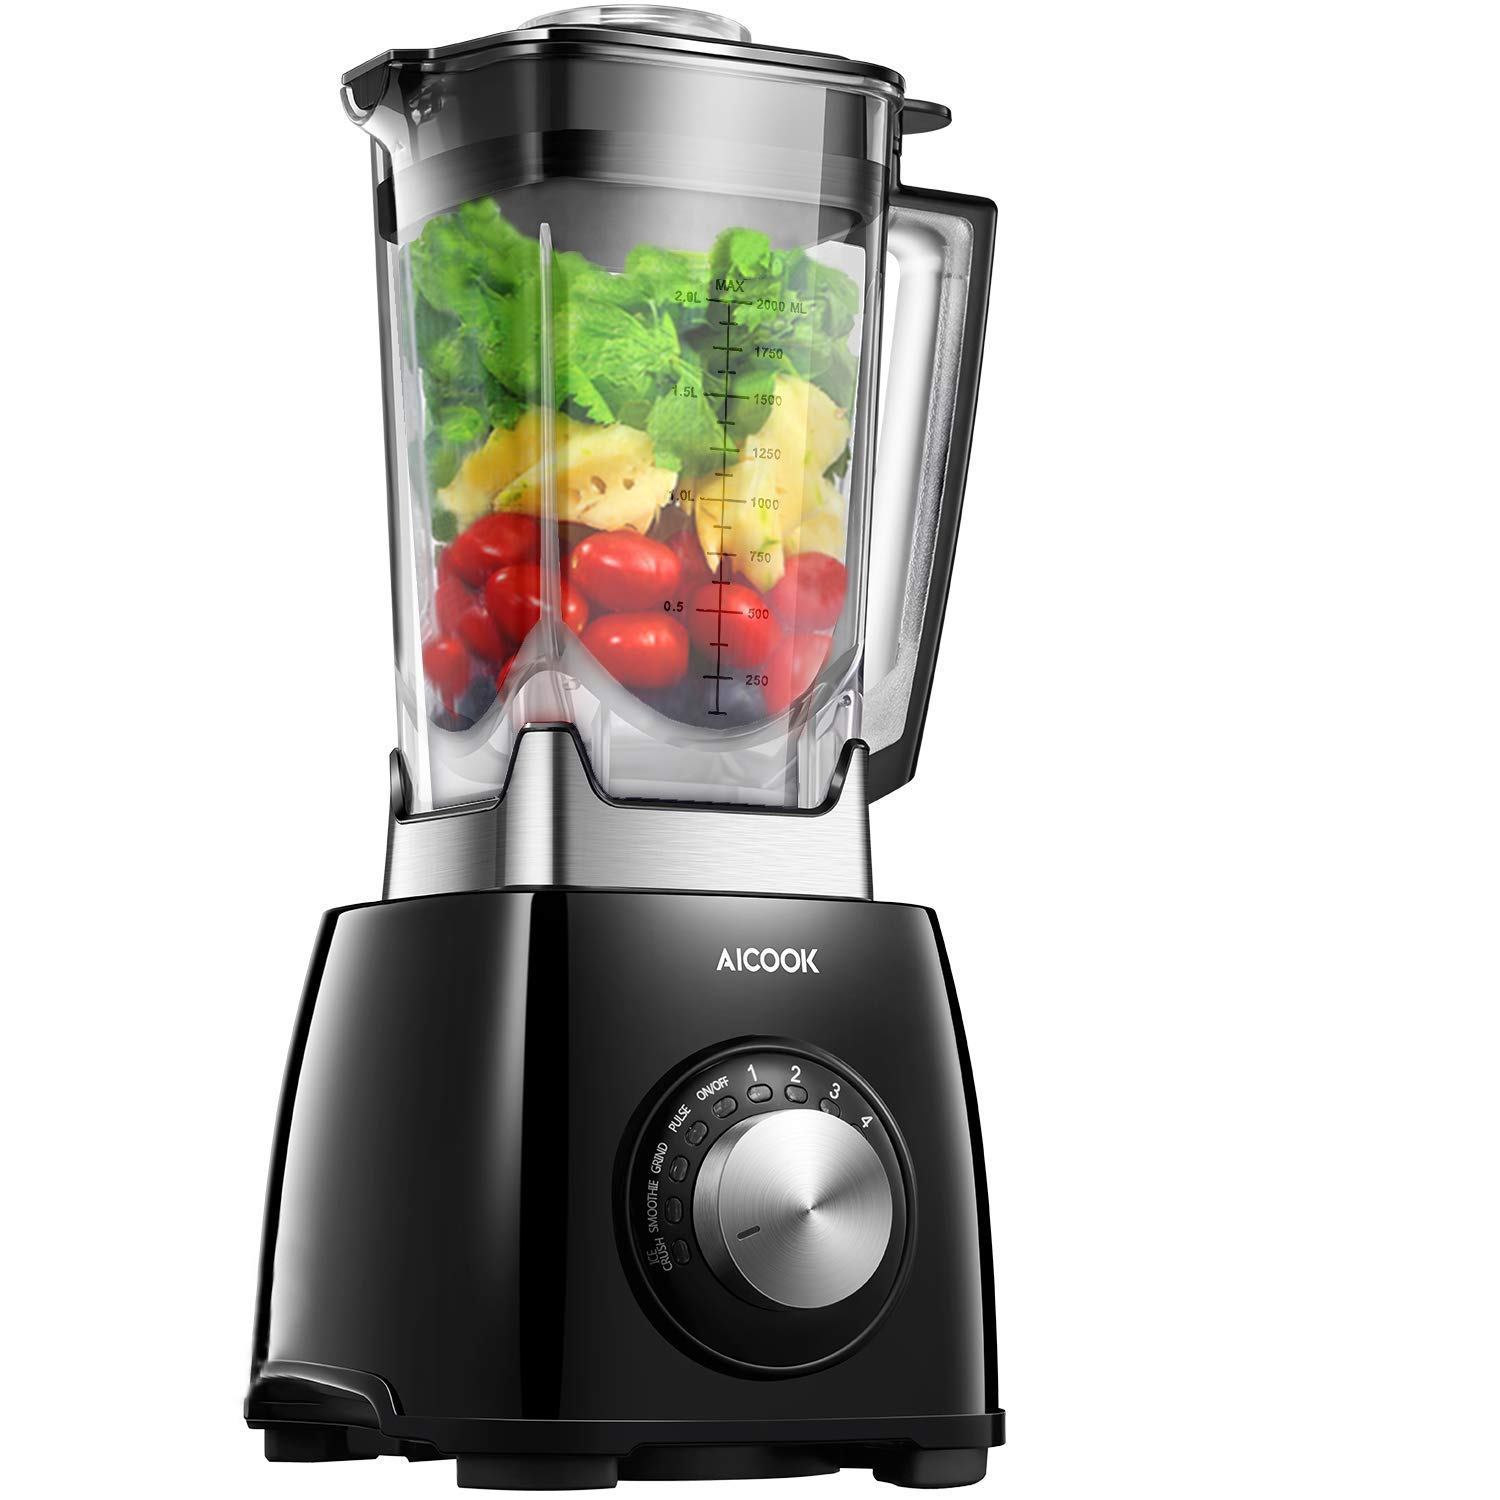 Aicook Blender, Smoothie Blender, 1450W 6 Fins Titanium Plated Stainless Steel Blades, Crush Food in Seconds, 72 Oz, BPA-Free, Black